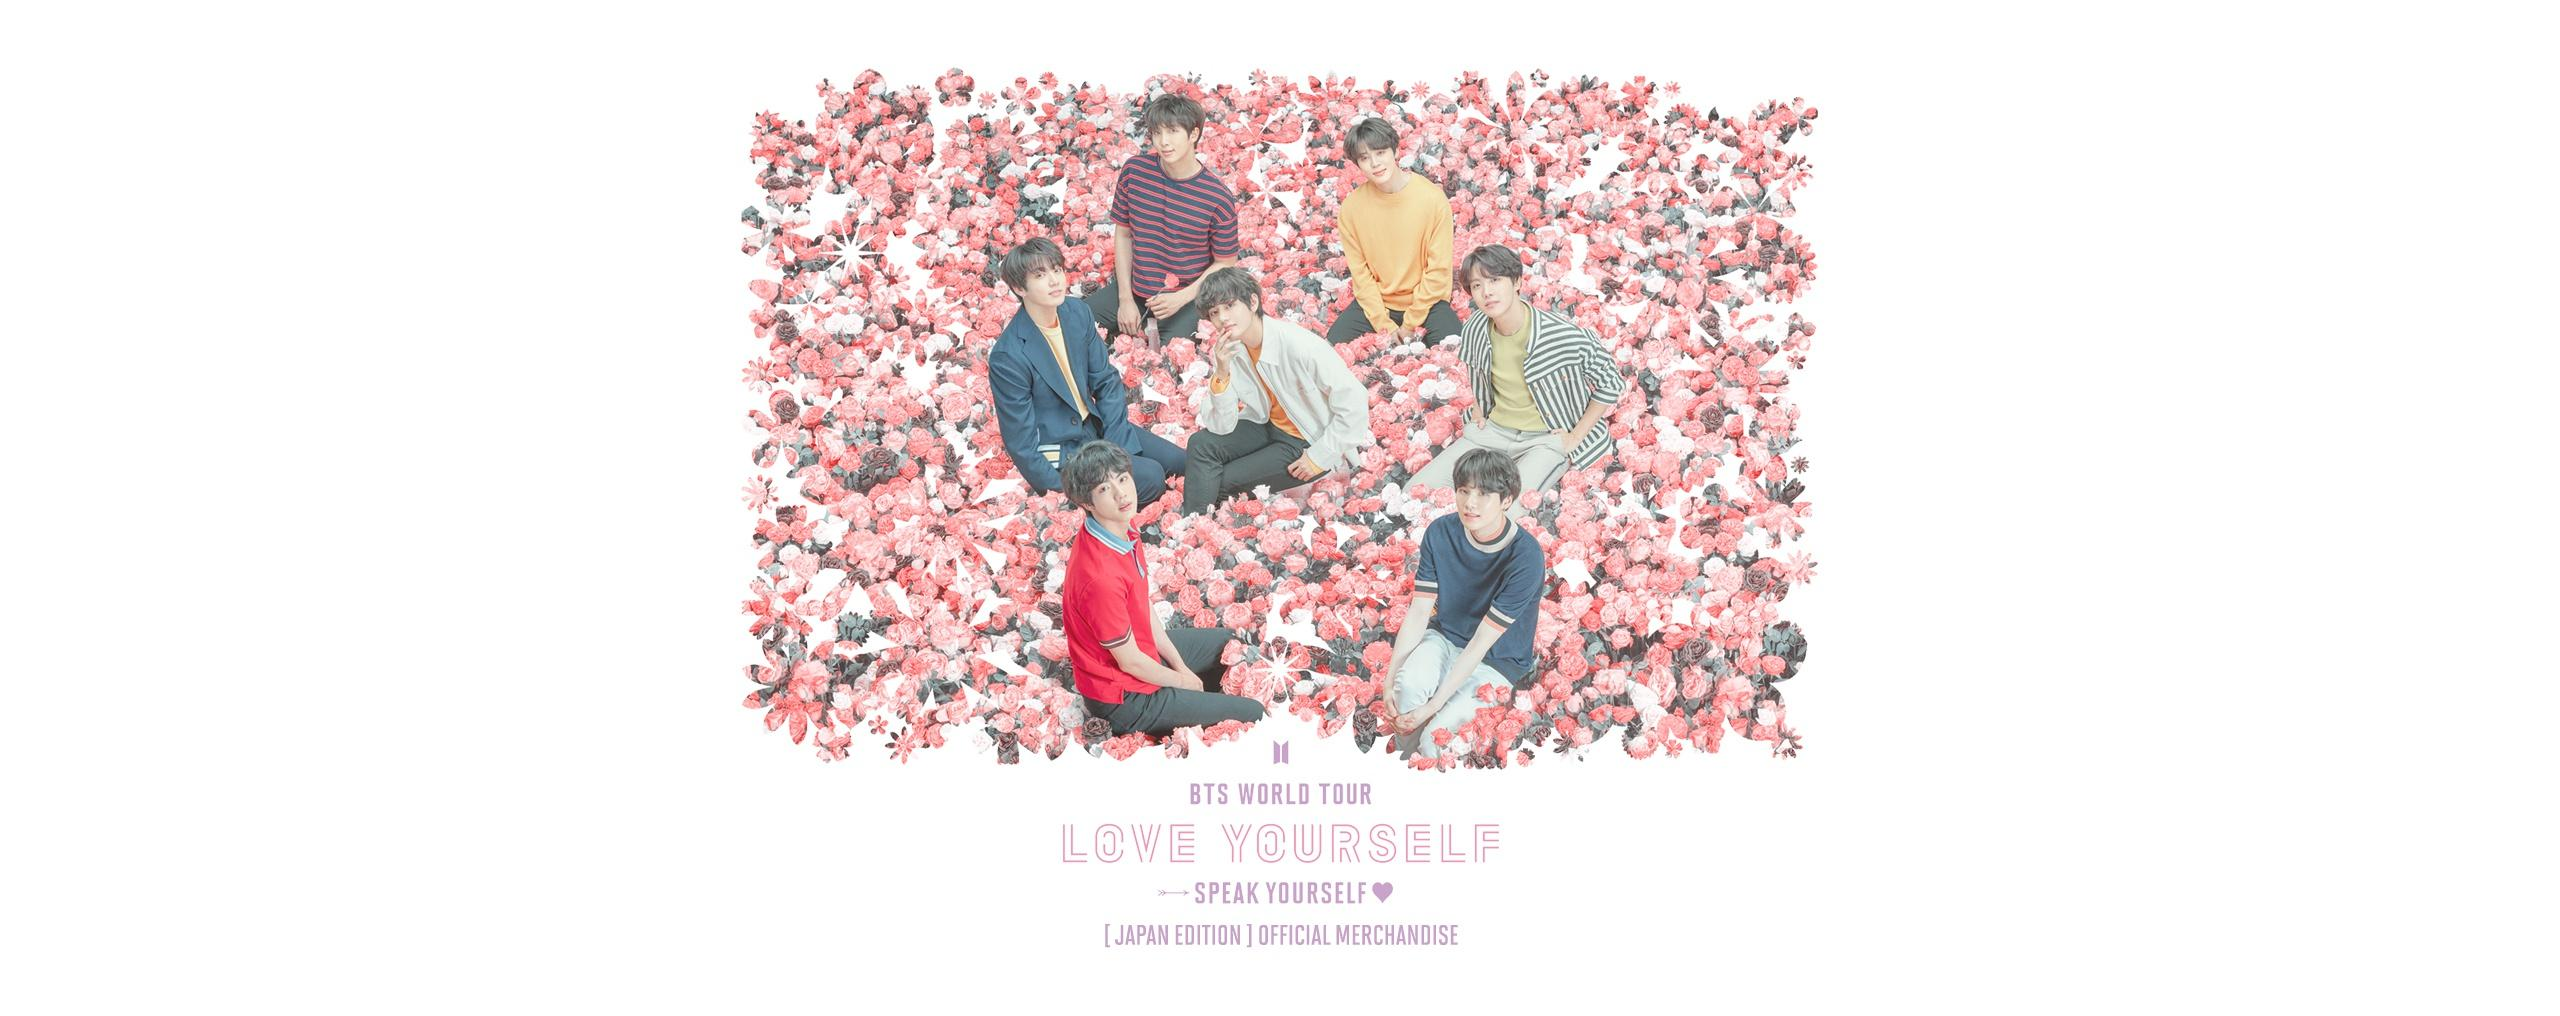 BTS WORLD TOUR 'LOVE YOURSELF: SPEAK YOURSELF' ~JAPAN EDITION~ OFFICIAL MERCHANDISE事後販売